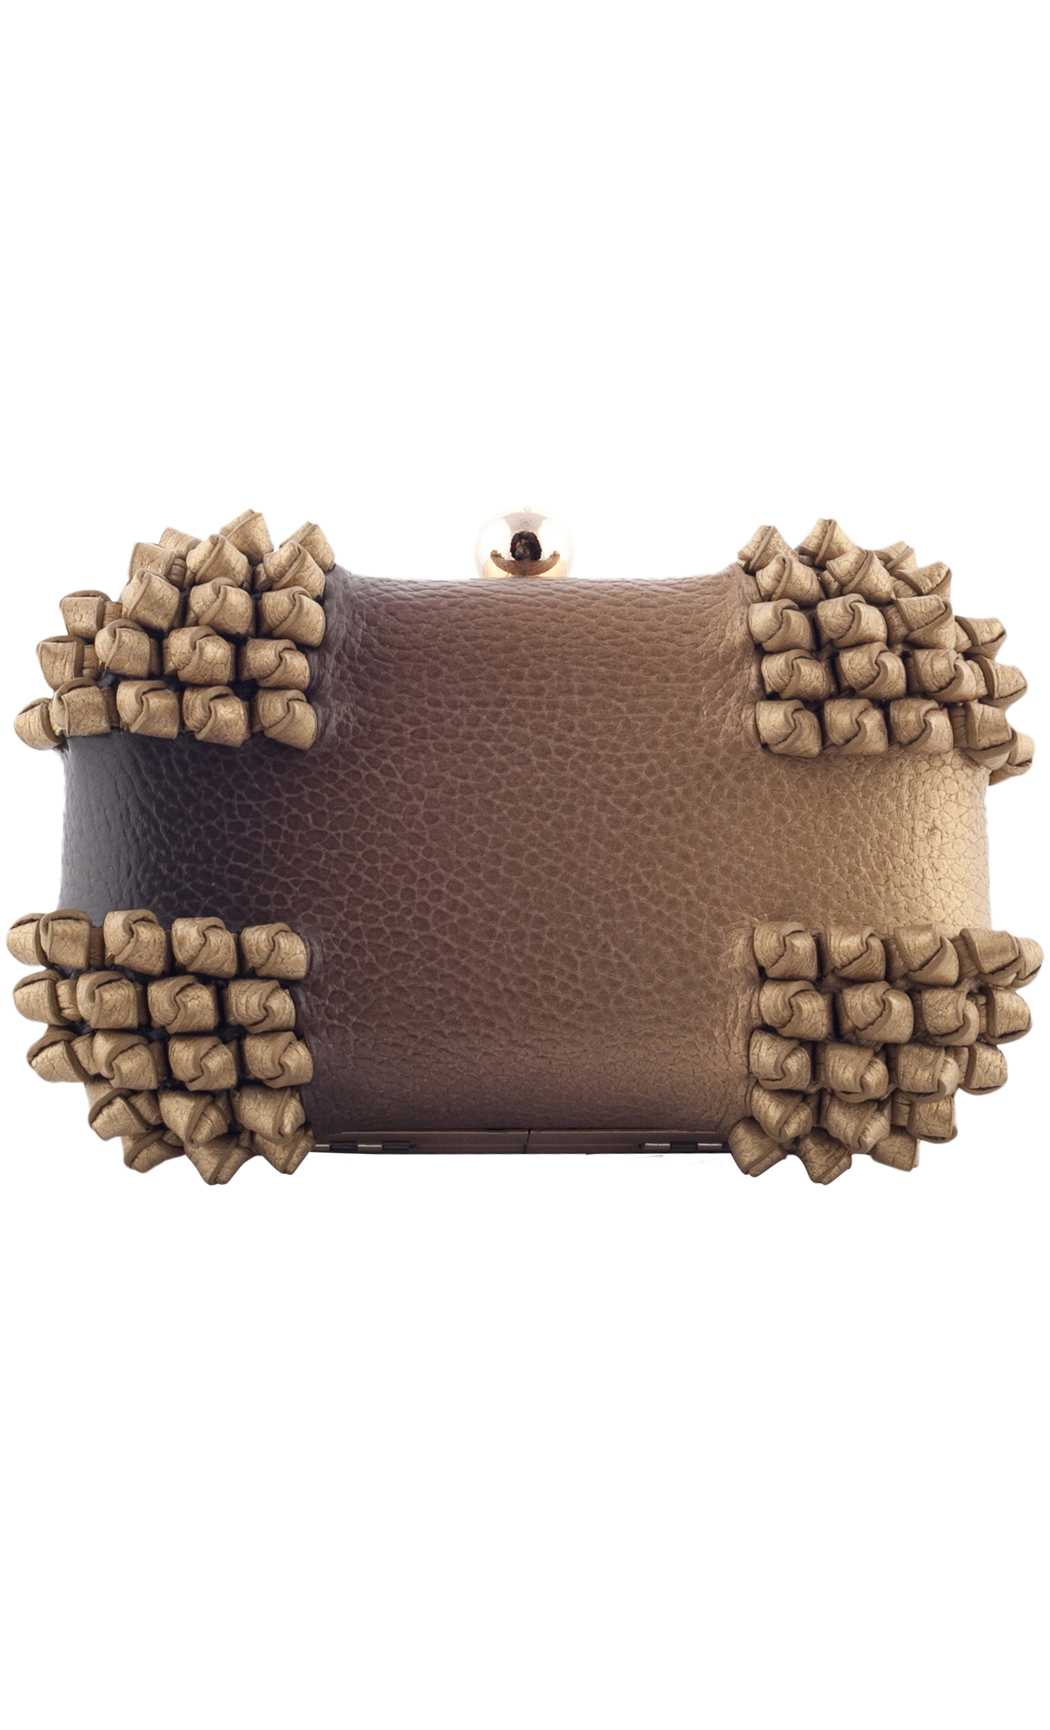 Blend knot Box Clutch in Gold-Brown. Buy Online